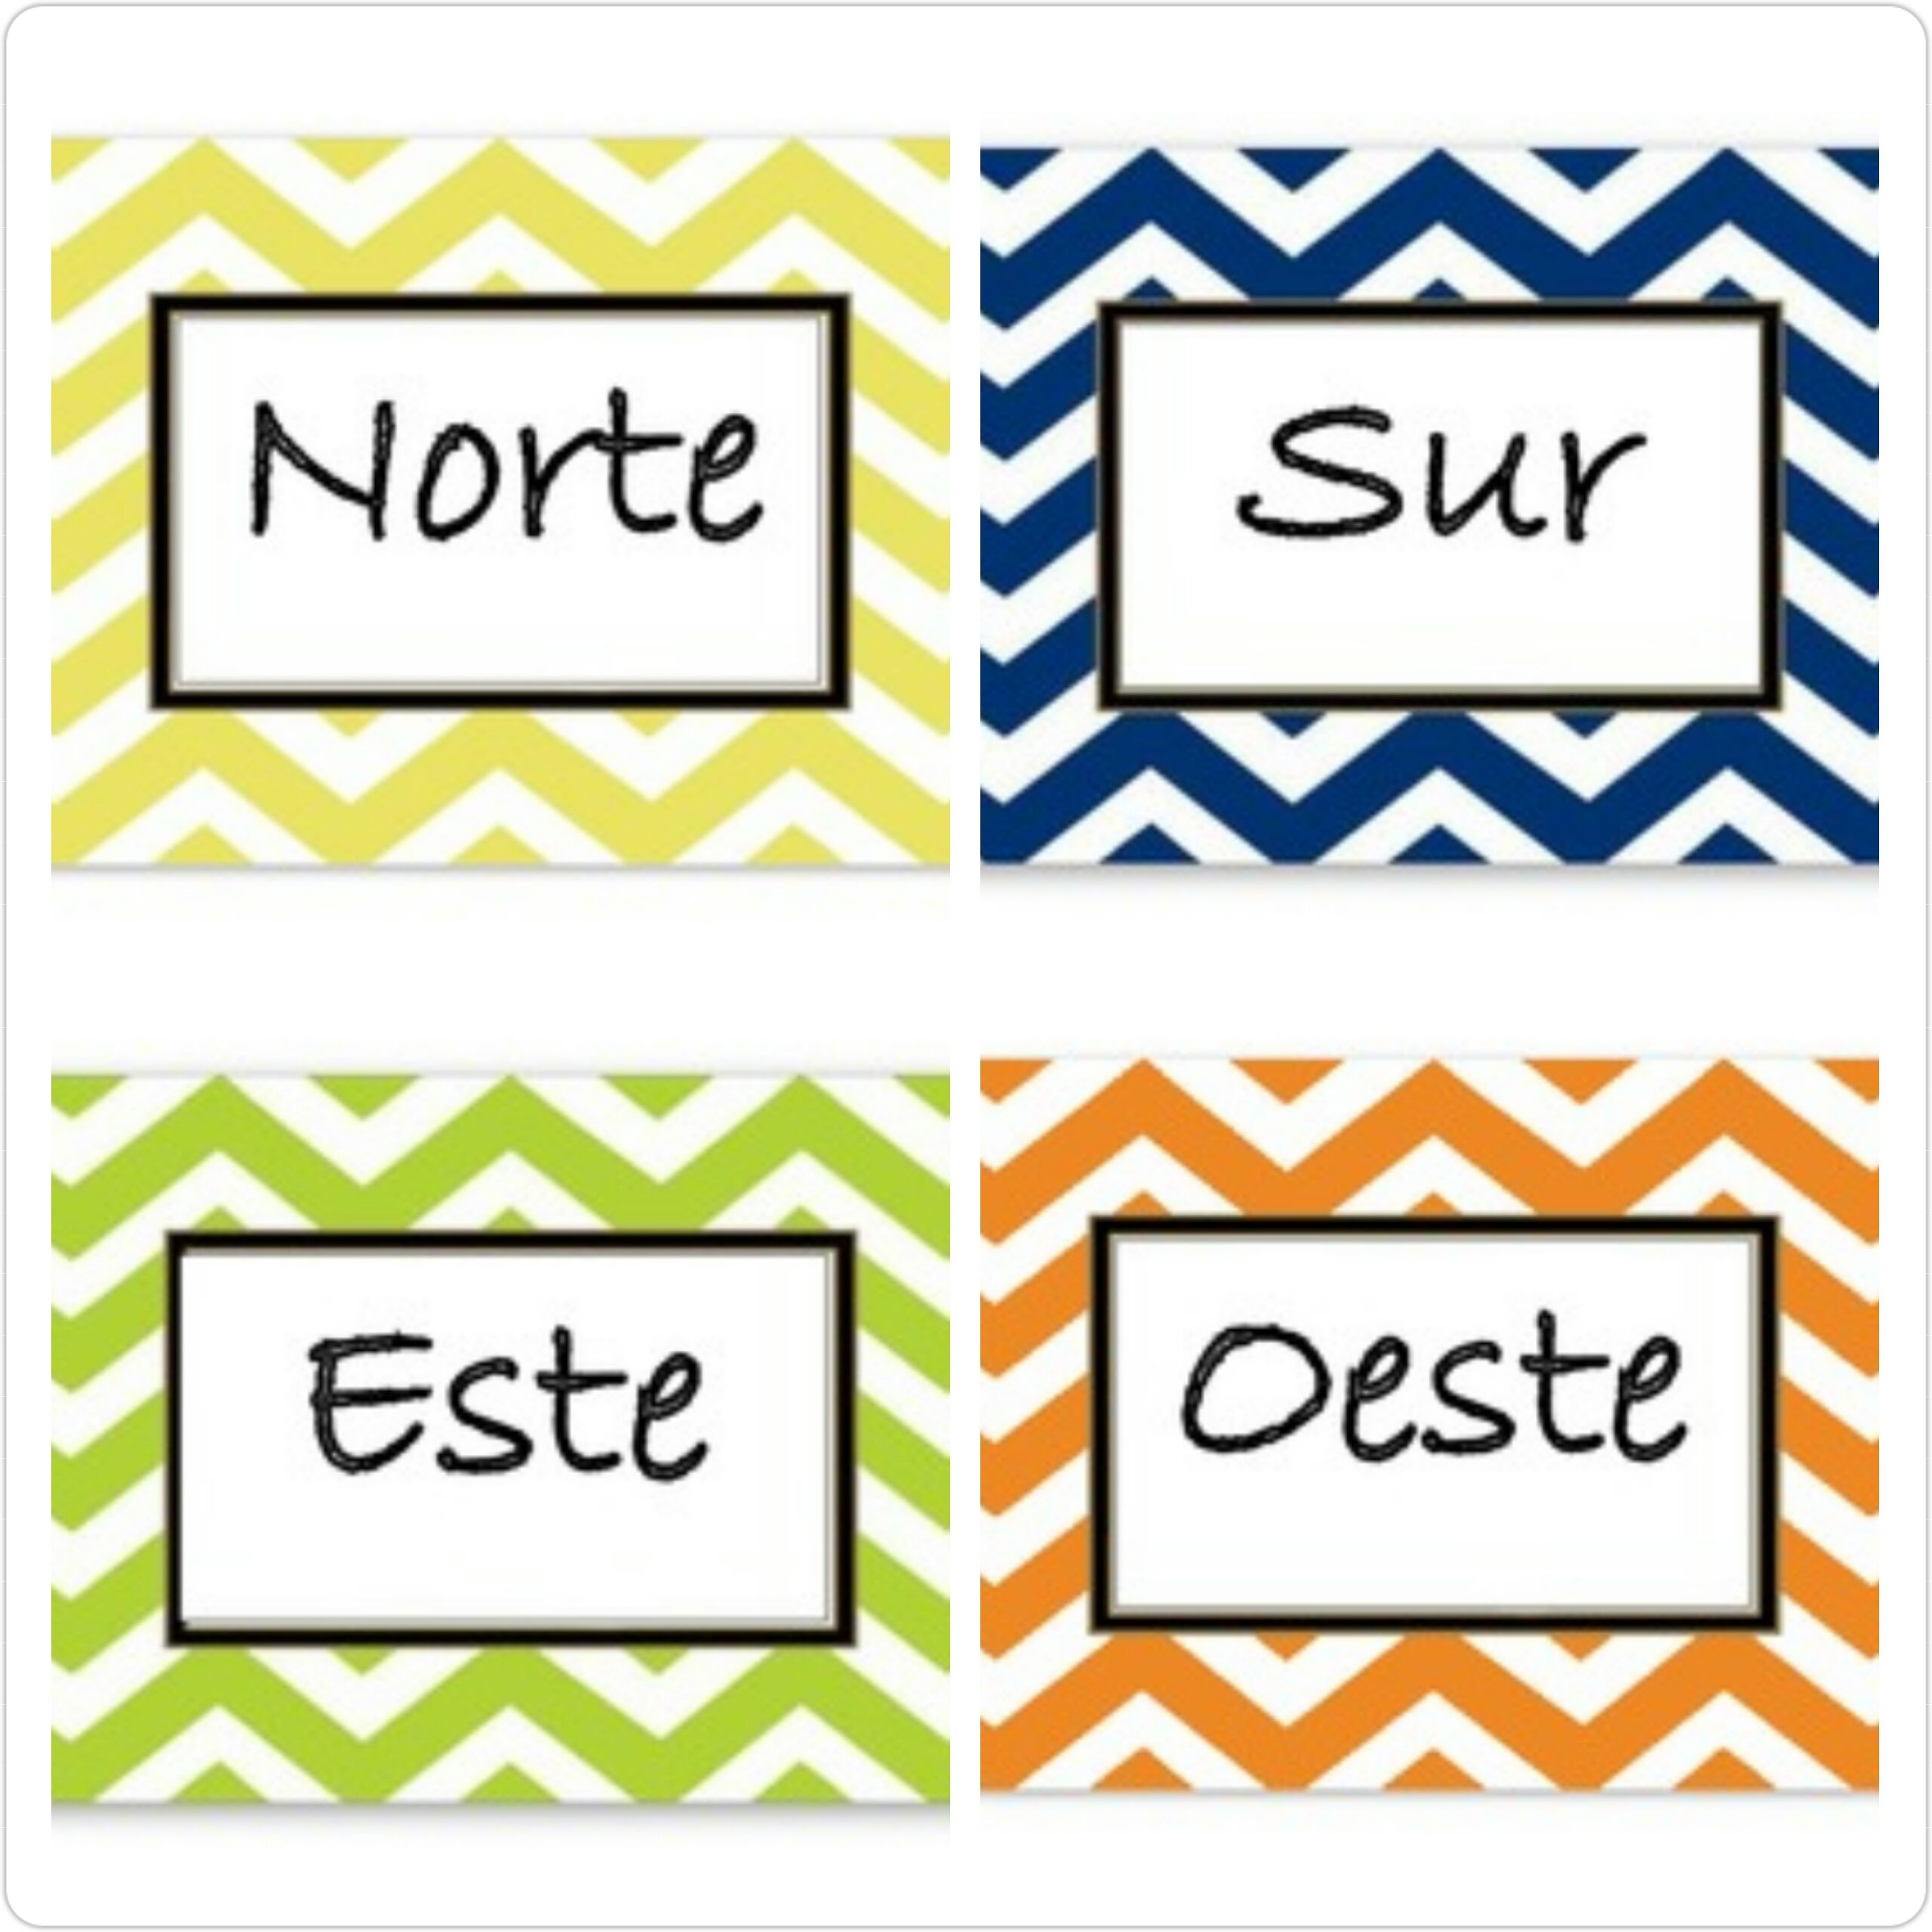 Spanish Cardinal Direction Signs Also Available In